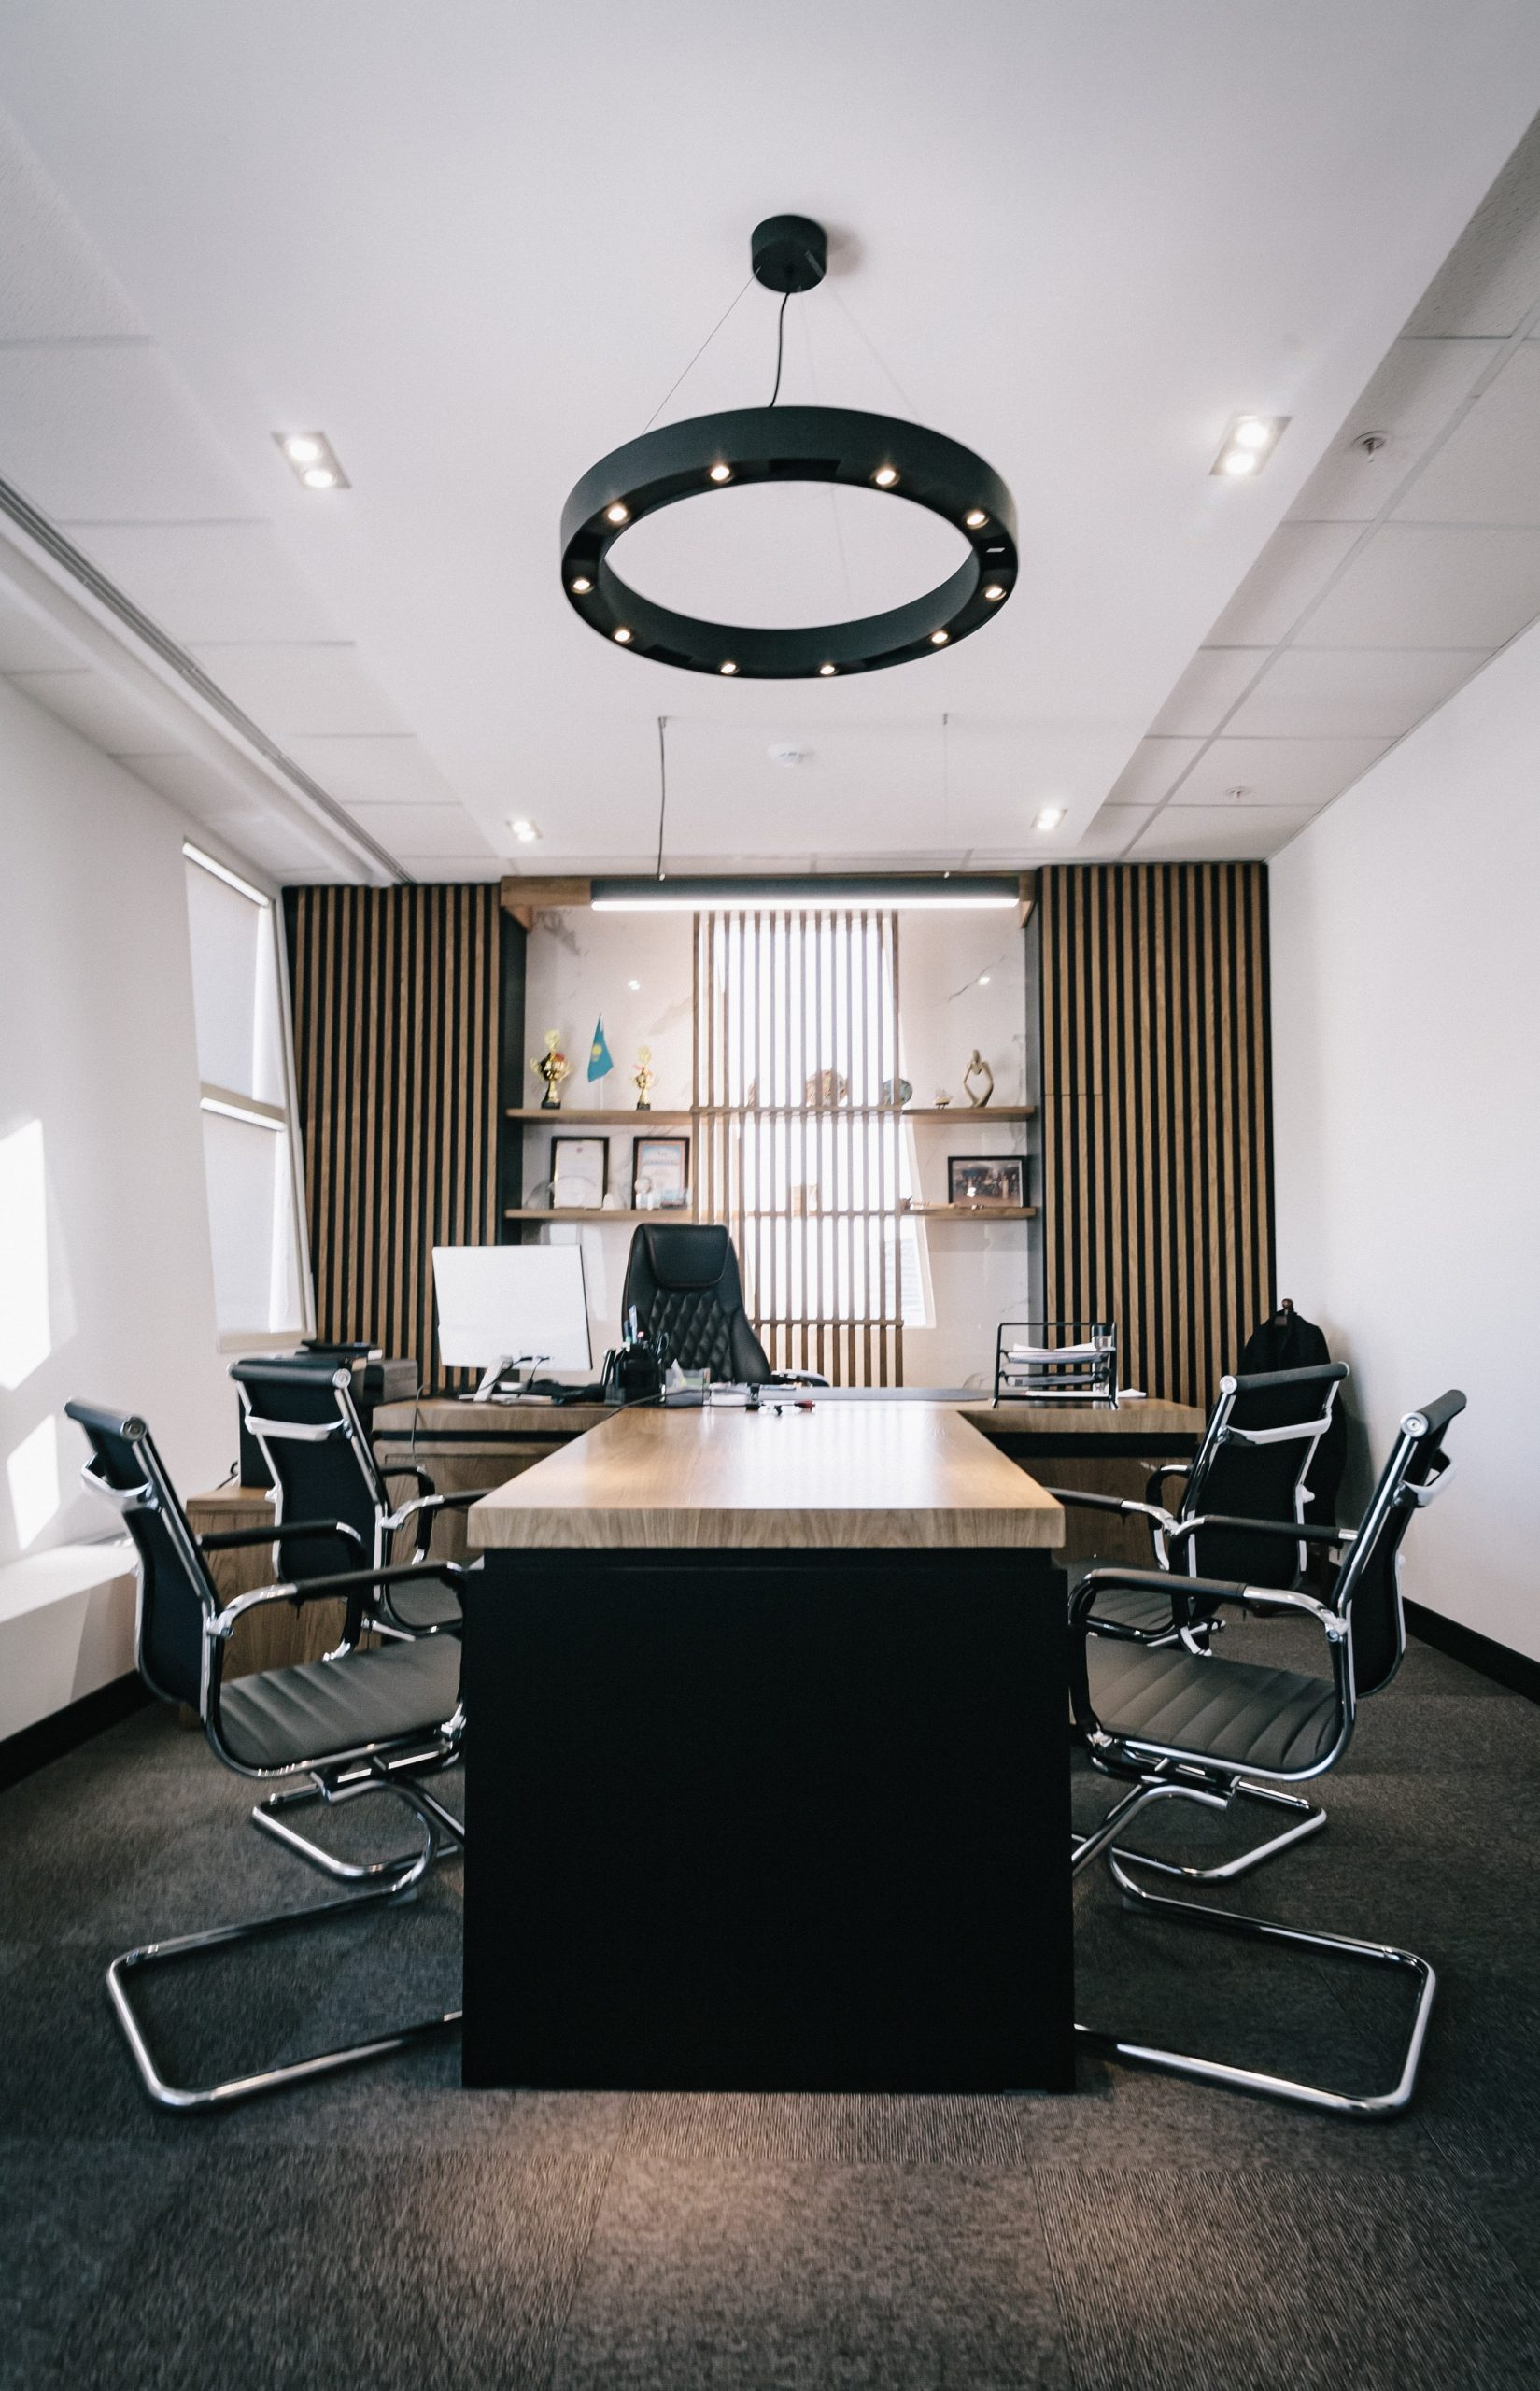 A browns carpet set amongst a stlysih office setting with four chairs.